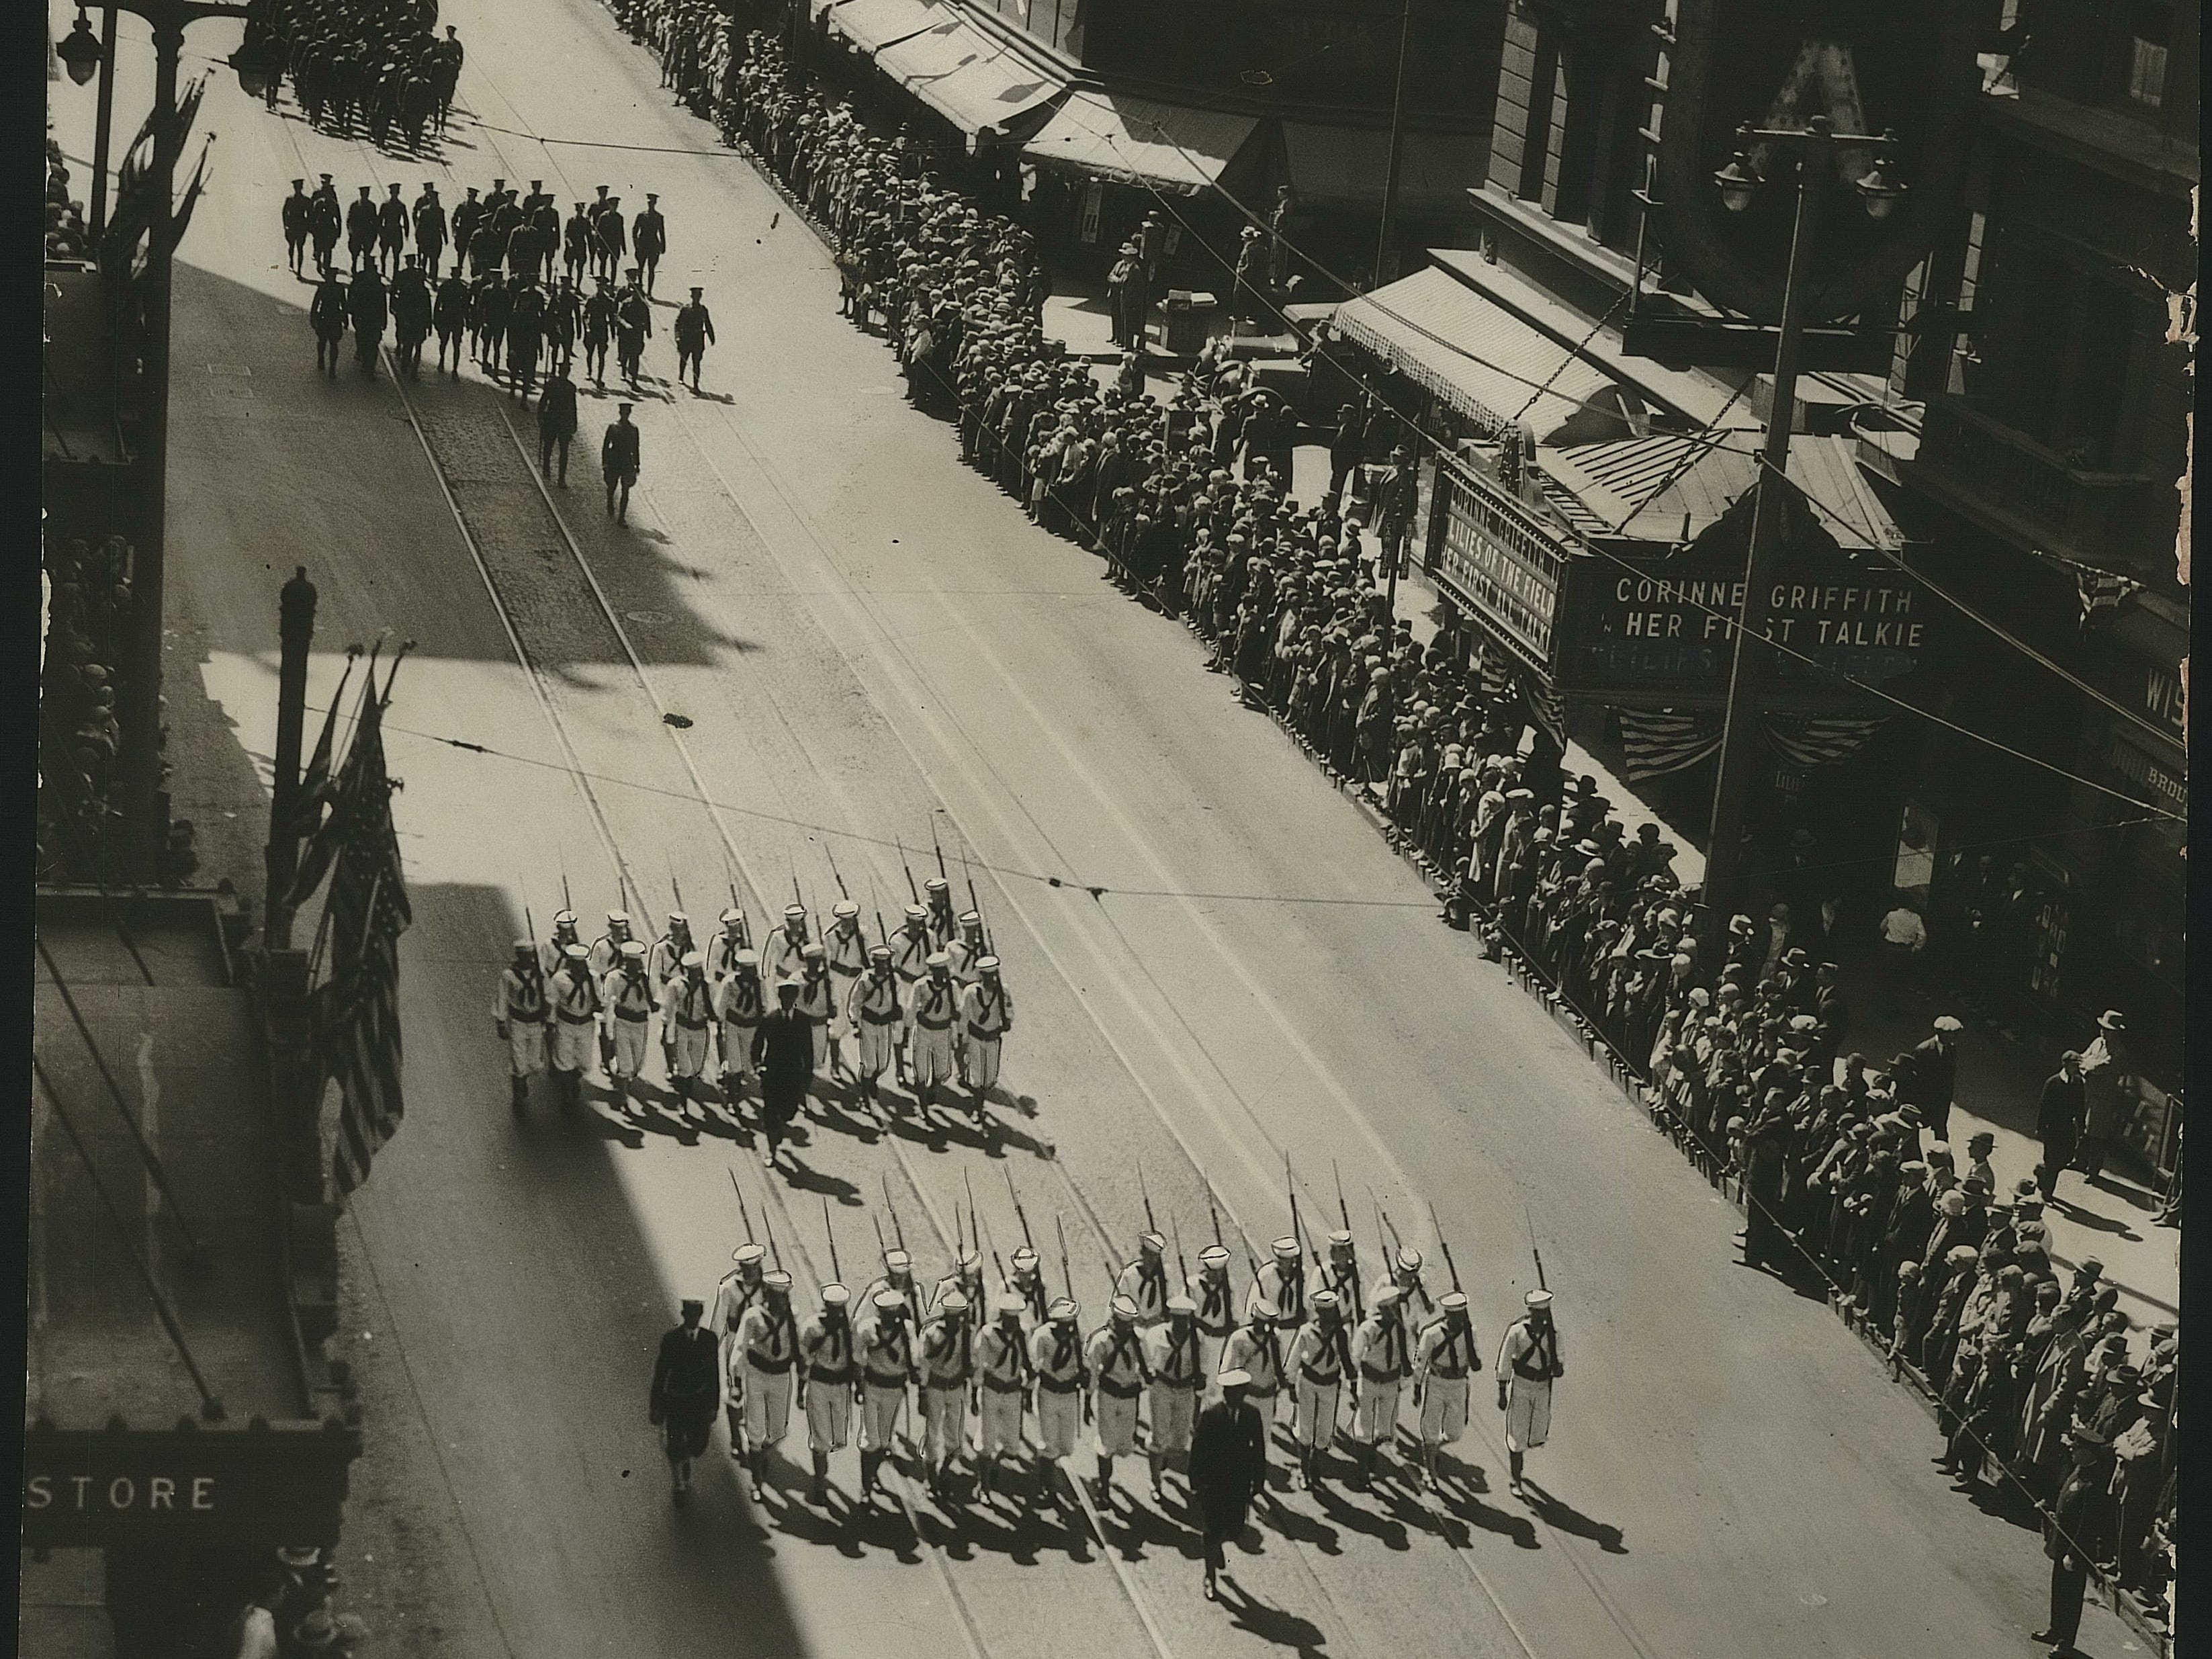 1930: Wisconsin Avenue looked like the grand avenue of war days as soldiers, sailors, veterans and rookies marched or rode down the street between thousands of spectators massed on both curbs. It was the annual Memorial days parade. The picture was taken from the Matthews building, looking west up the avenue from Third Street.